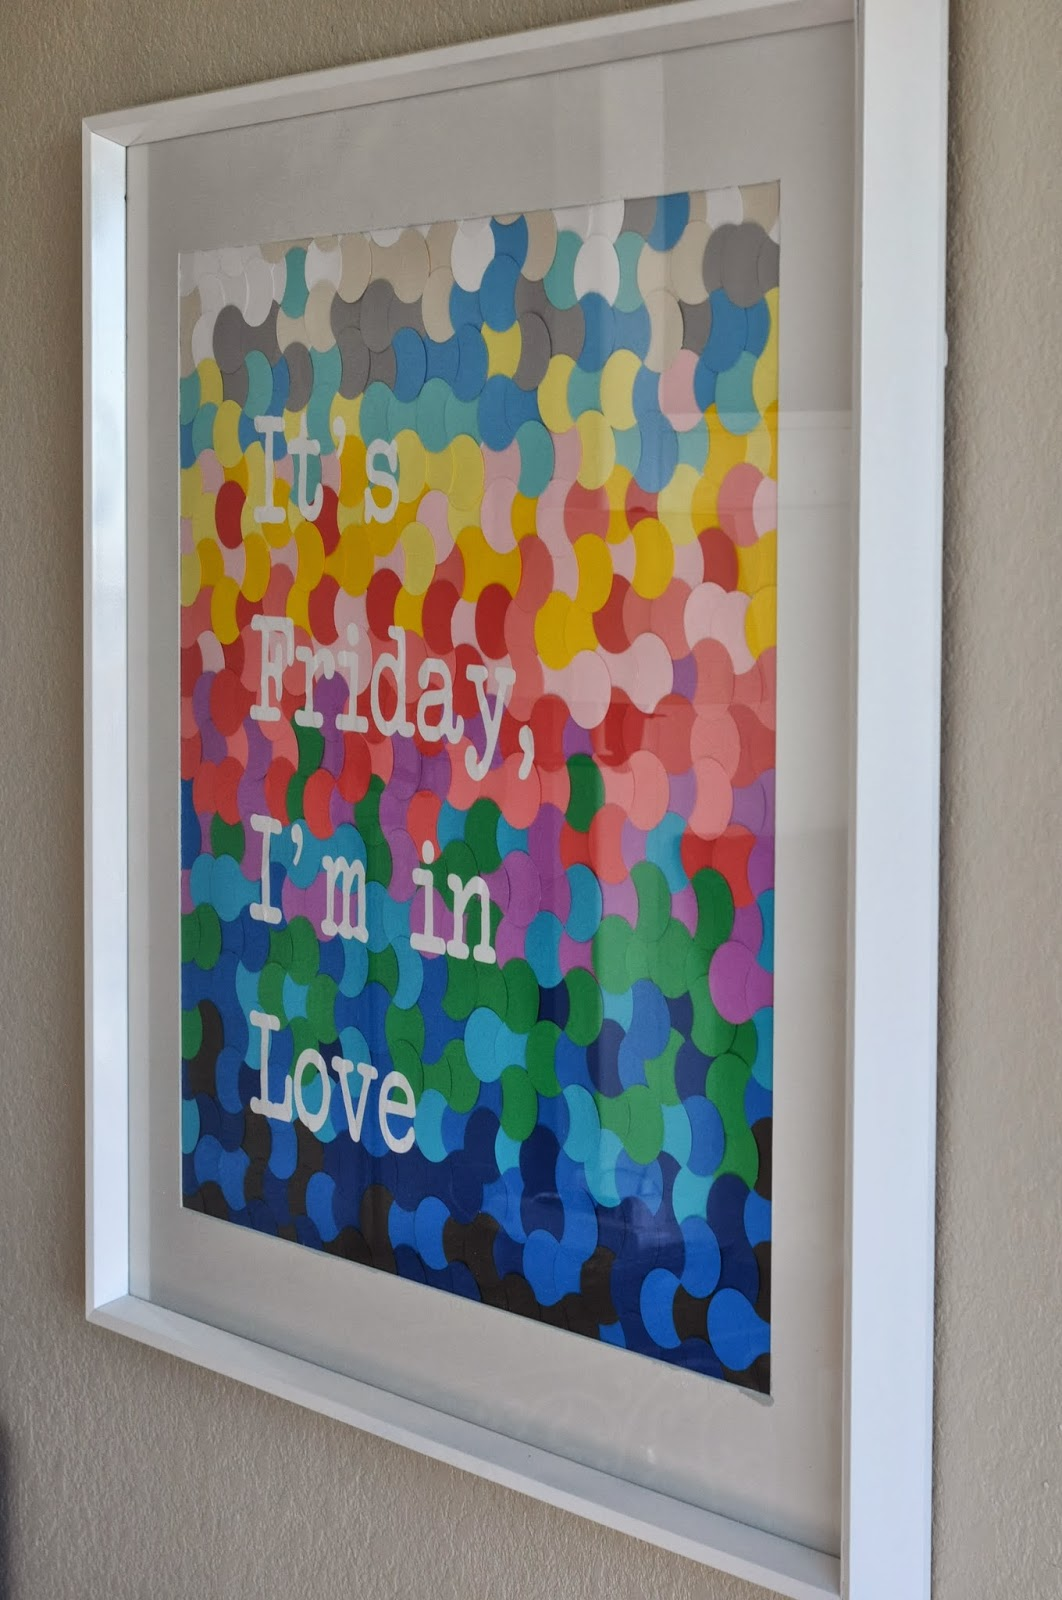 Wall Decor With Scrapbook Paper : Decor sanity it s friday i m in love scrapbook paper